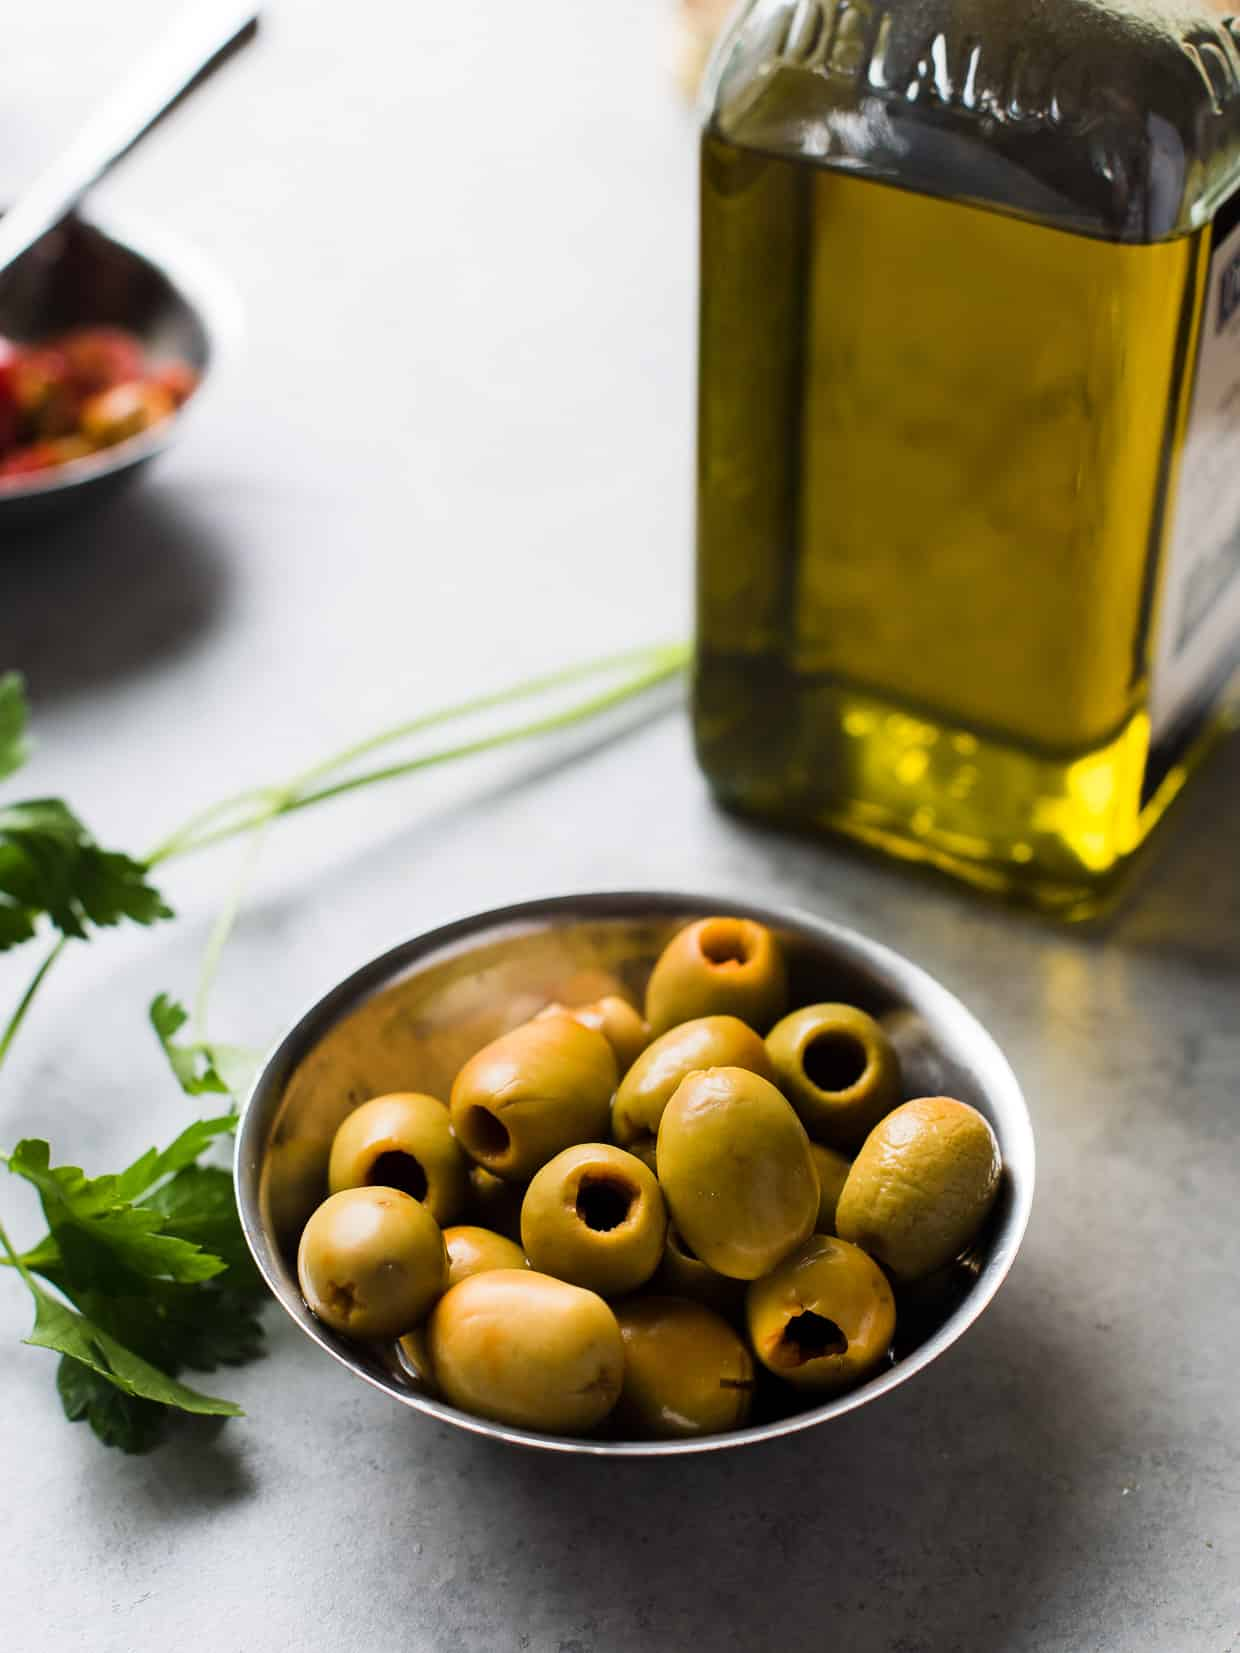 Spanish olives for Baked Halibut with Olives and Tomatoes.